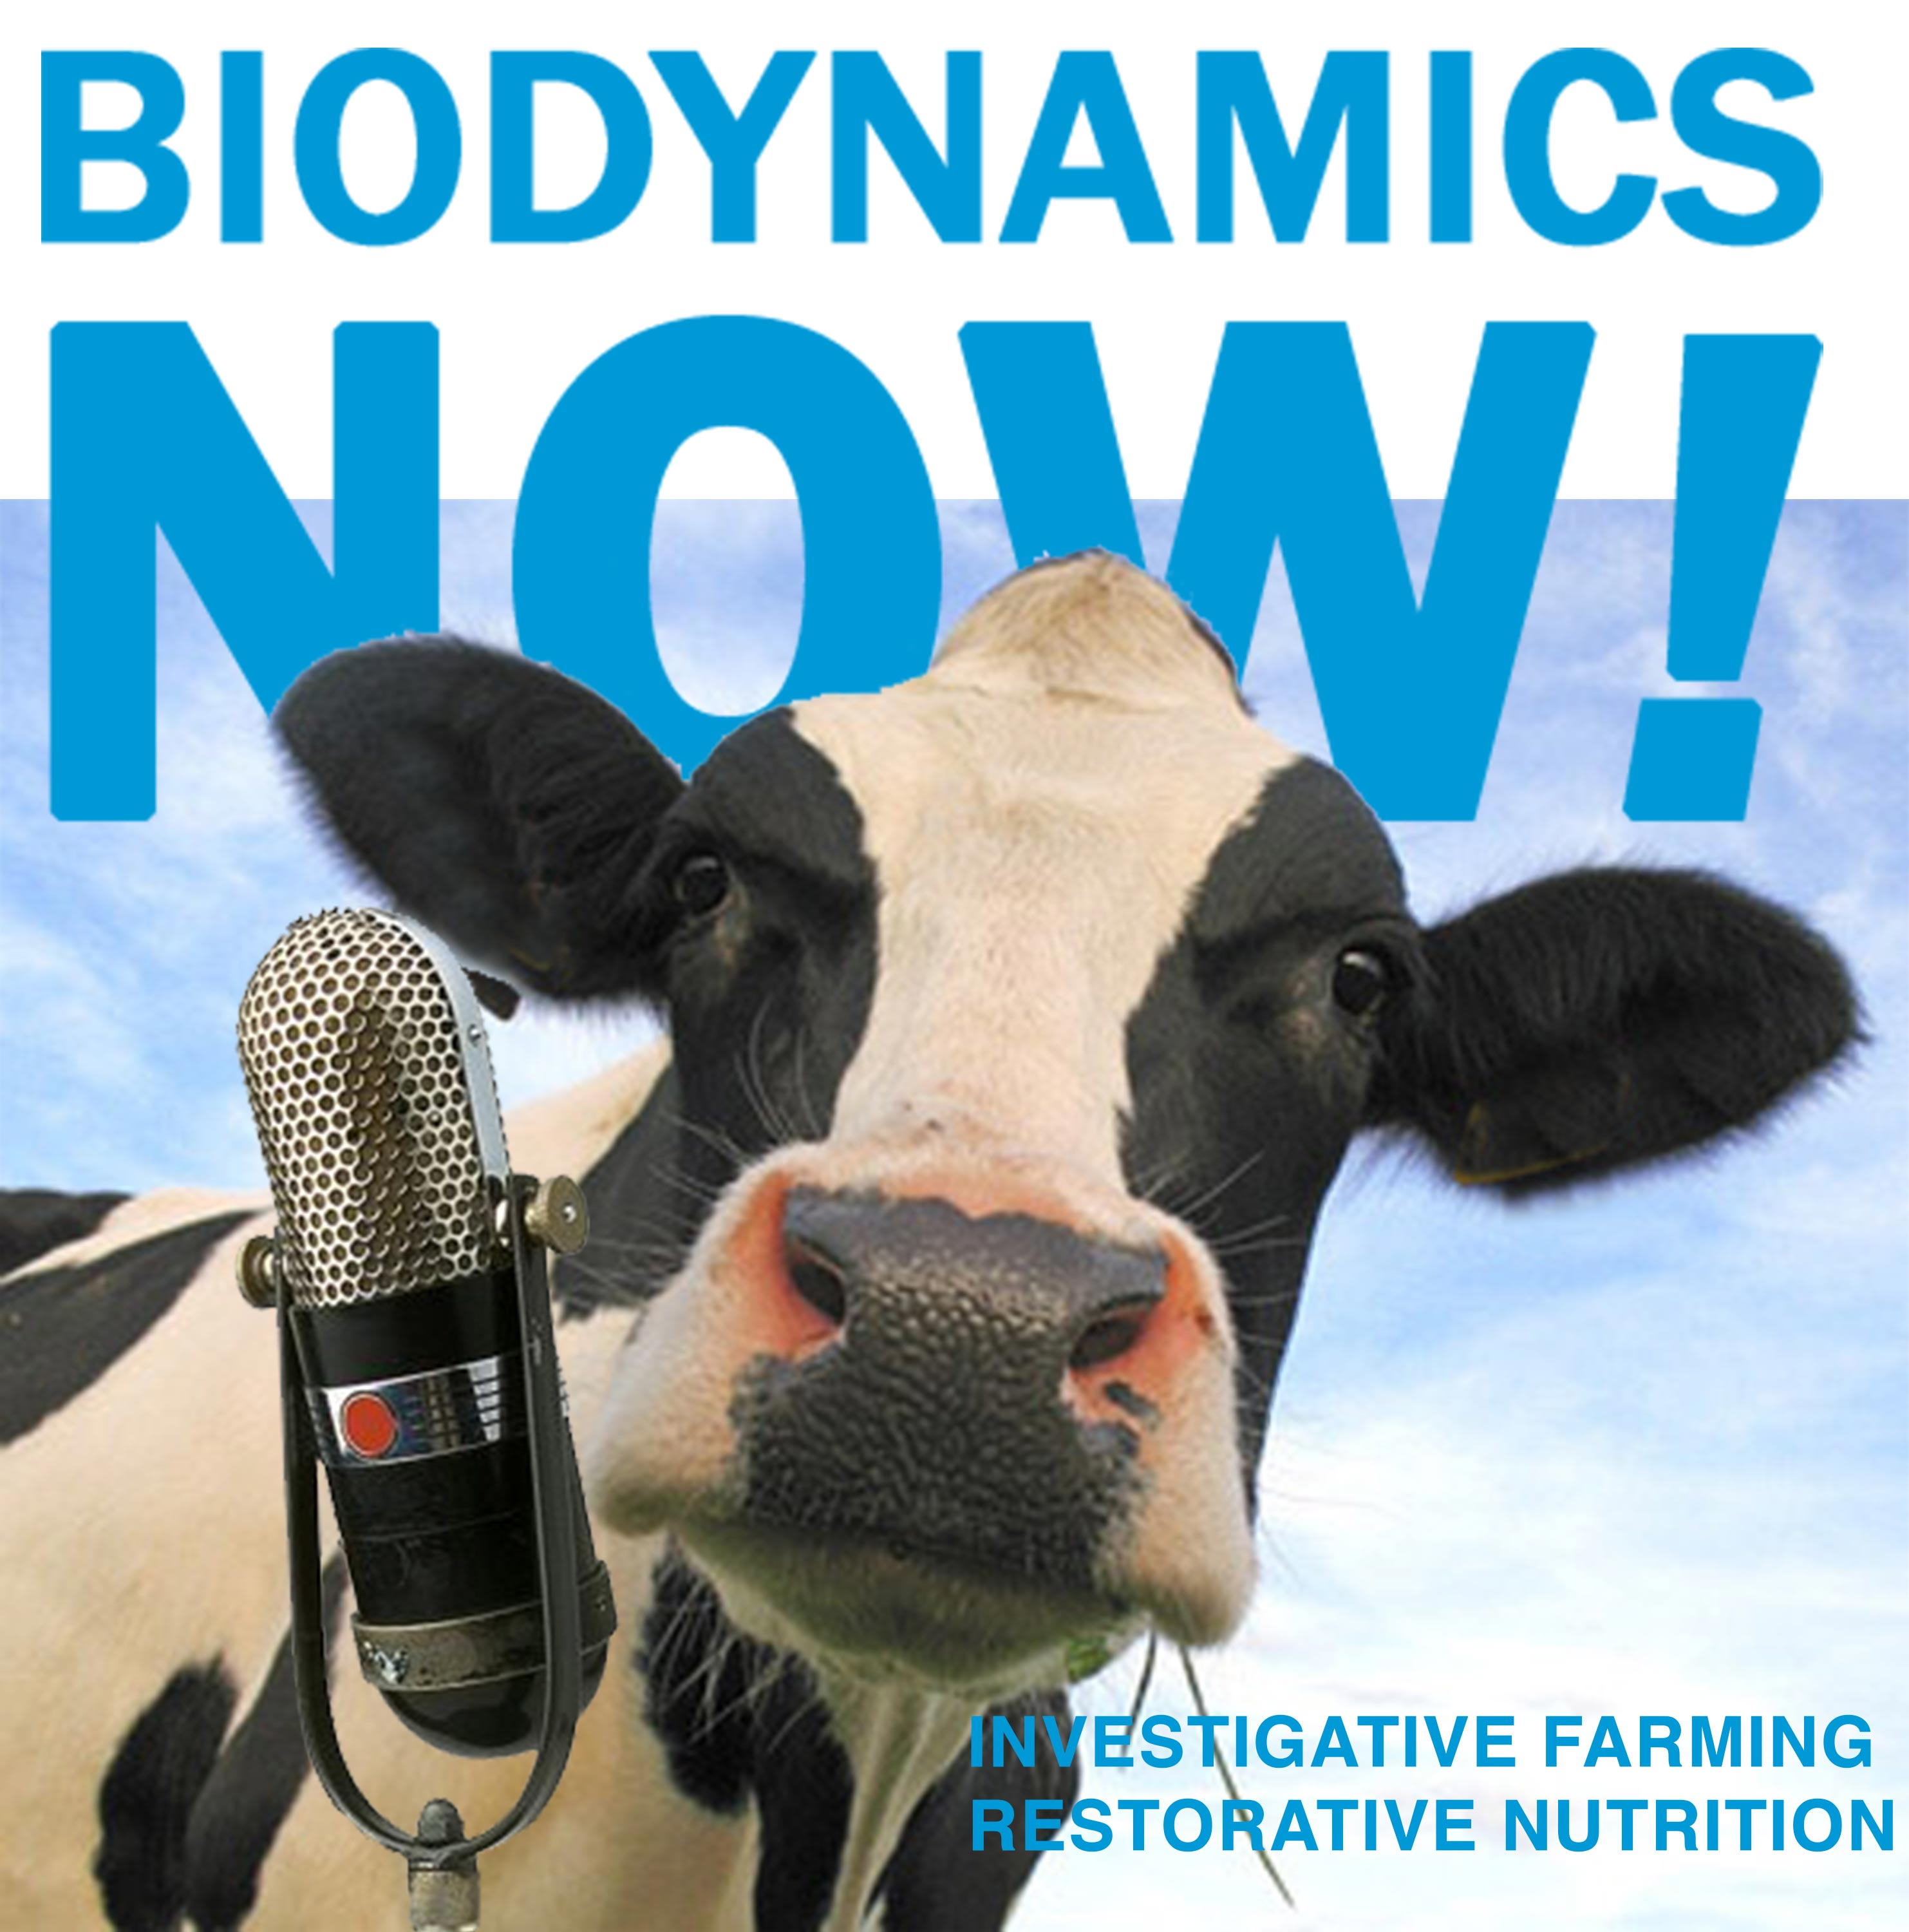 Biodynamics Now! Investigative Farming and Restorative Nutrition Podcast show art